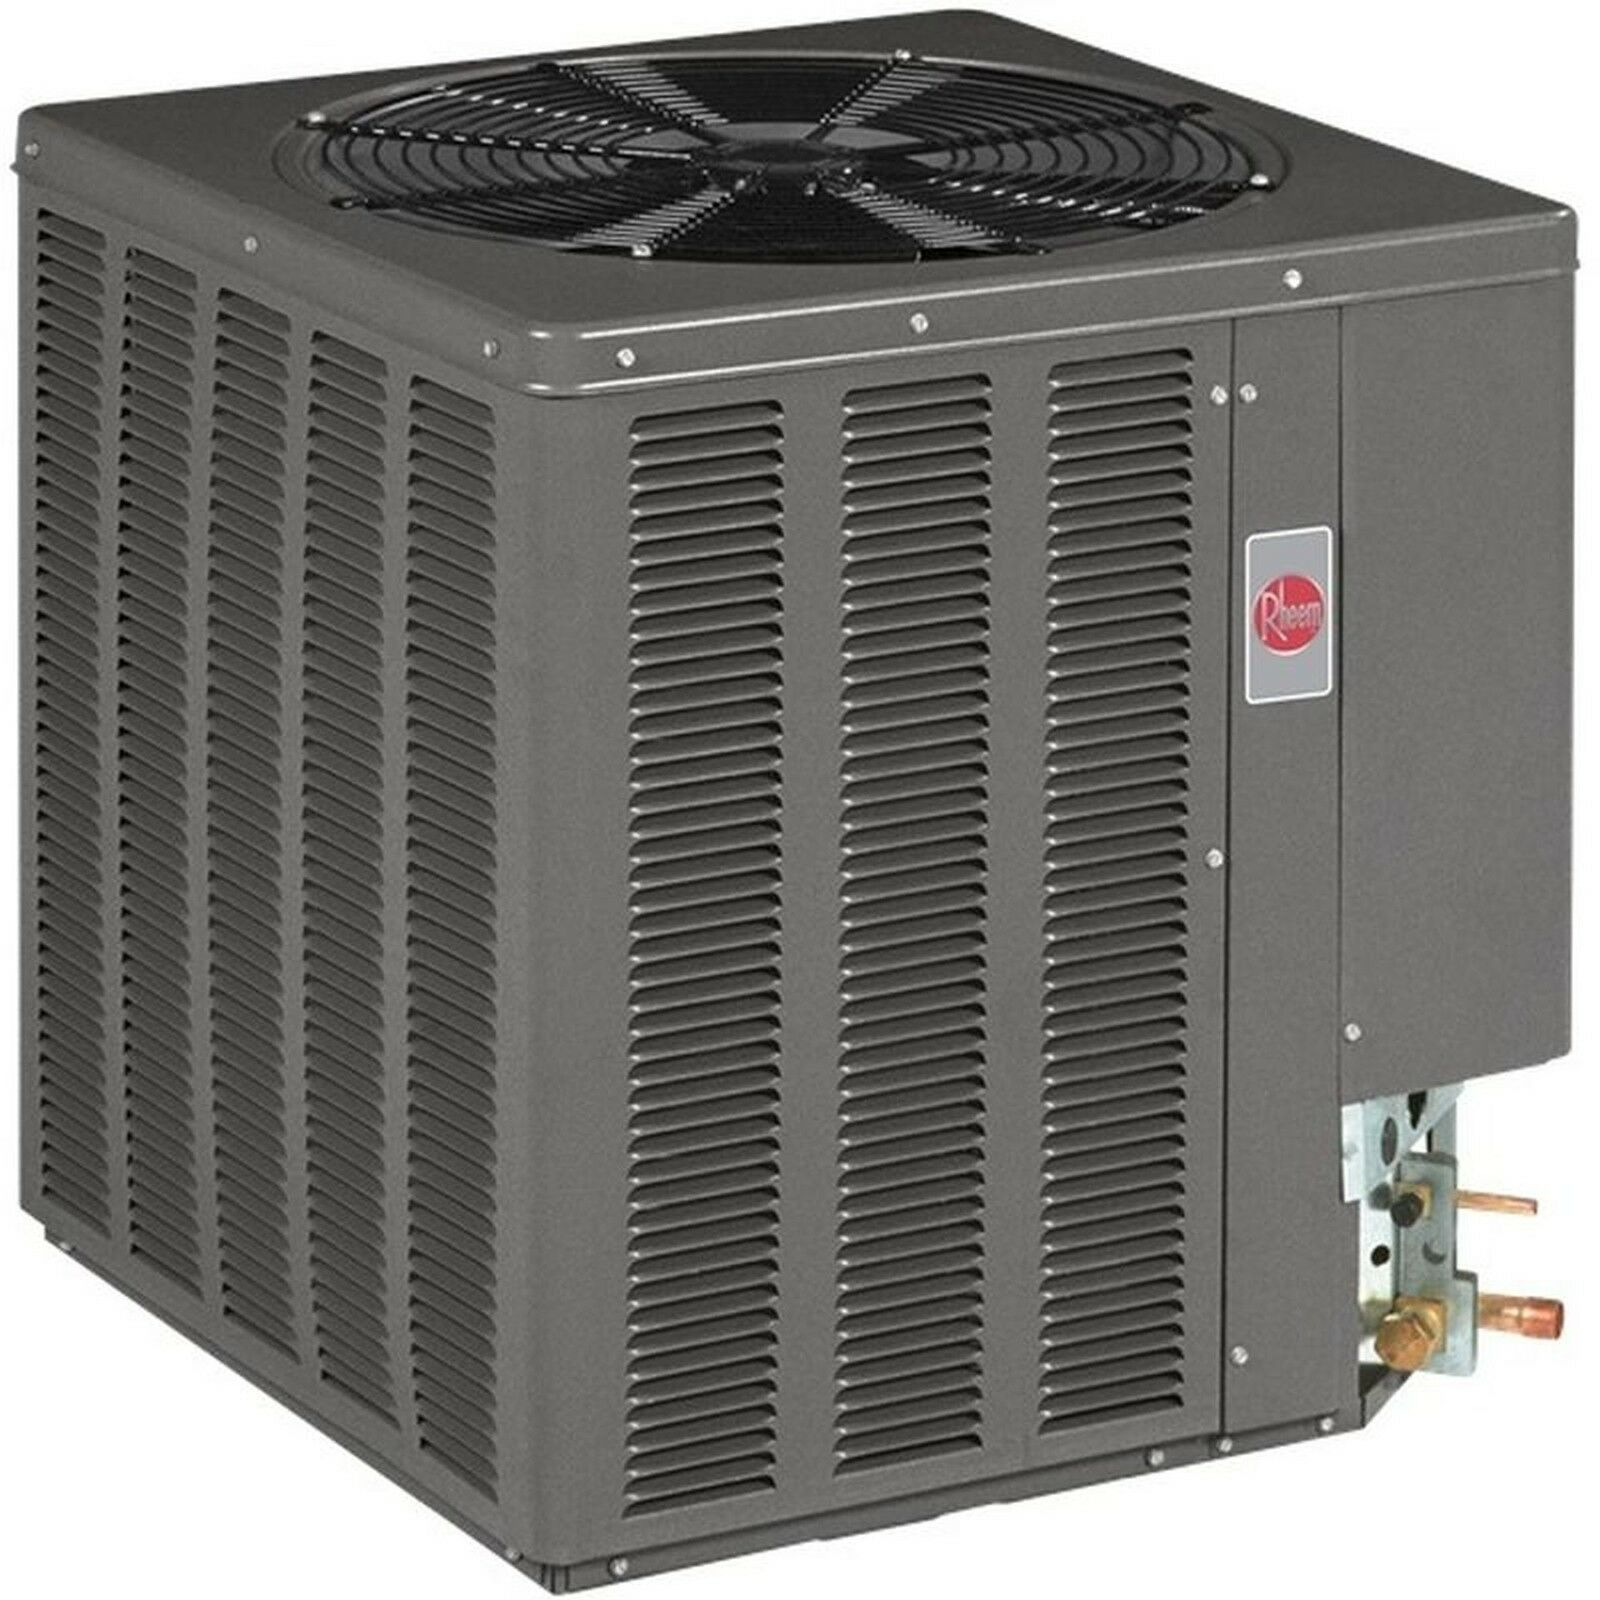 4 Ton Central Air Conditioning Condensing Unit And